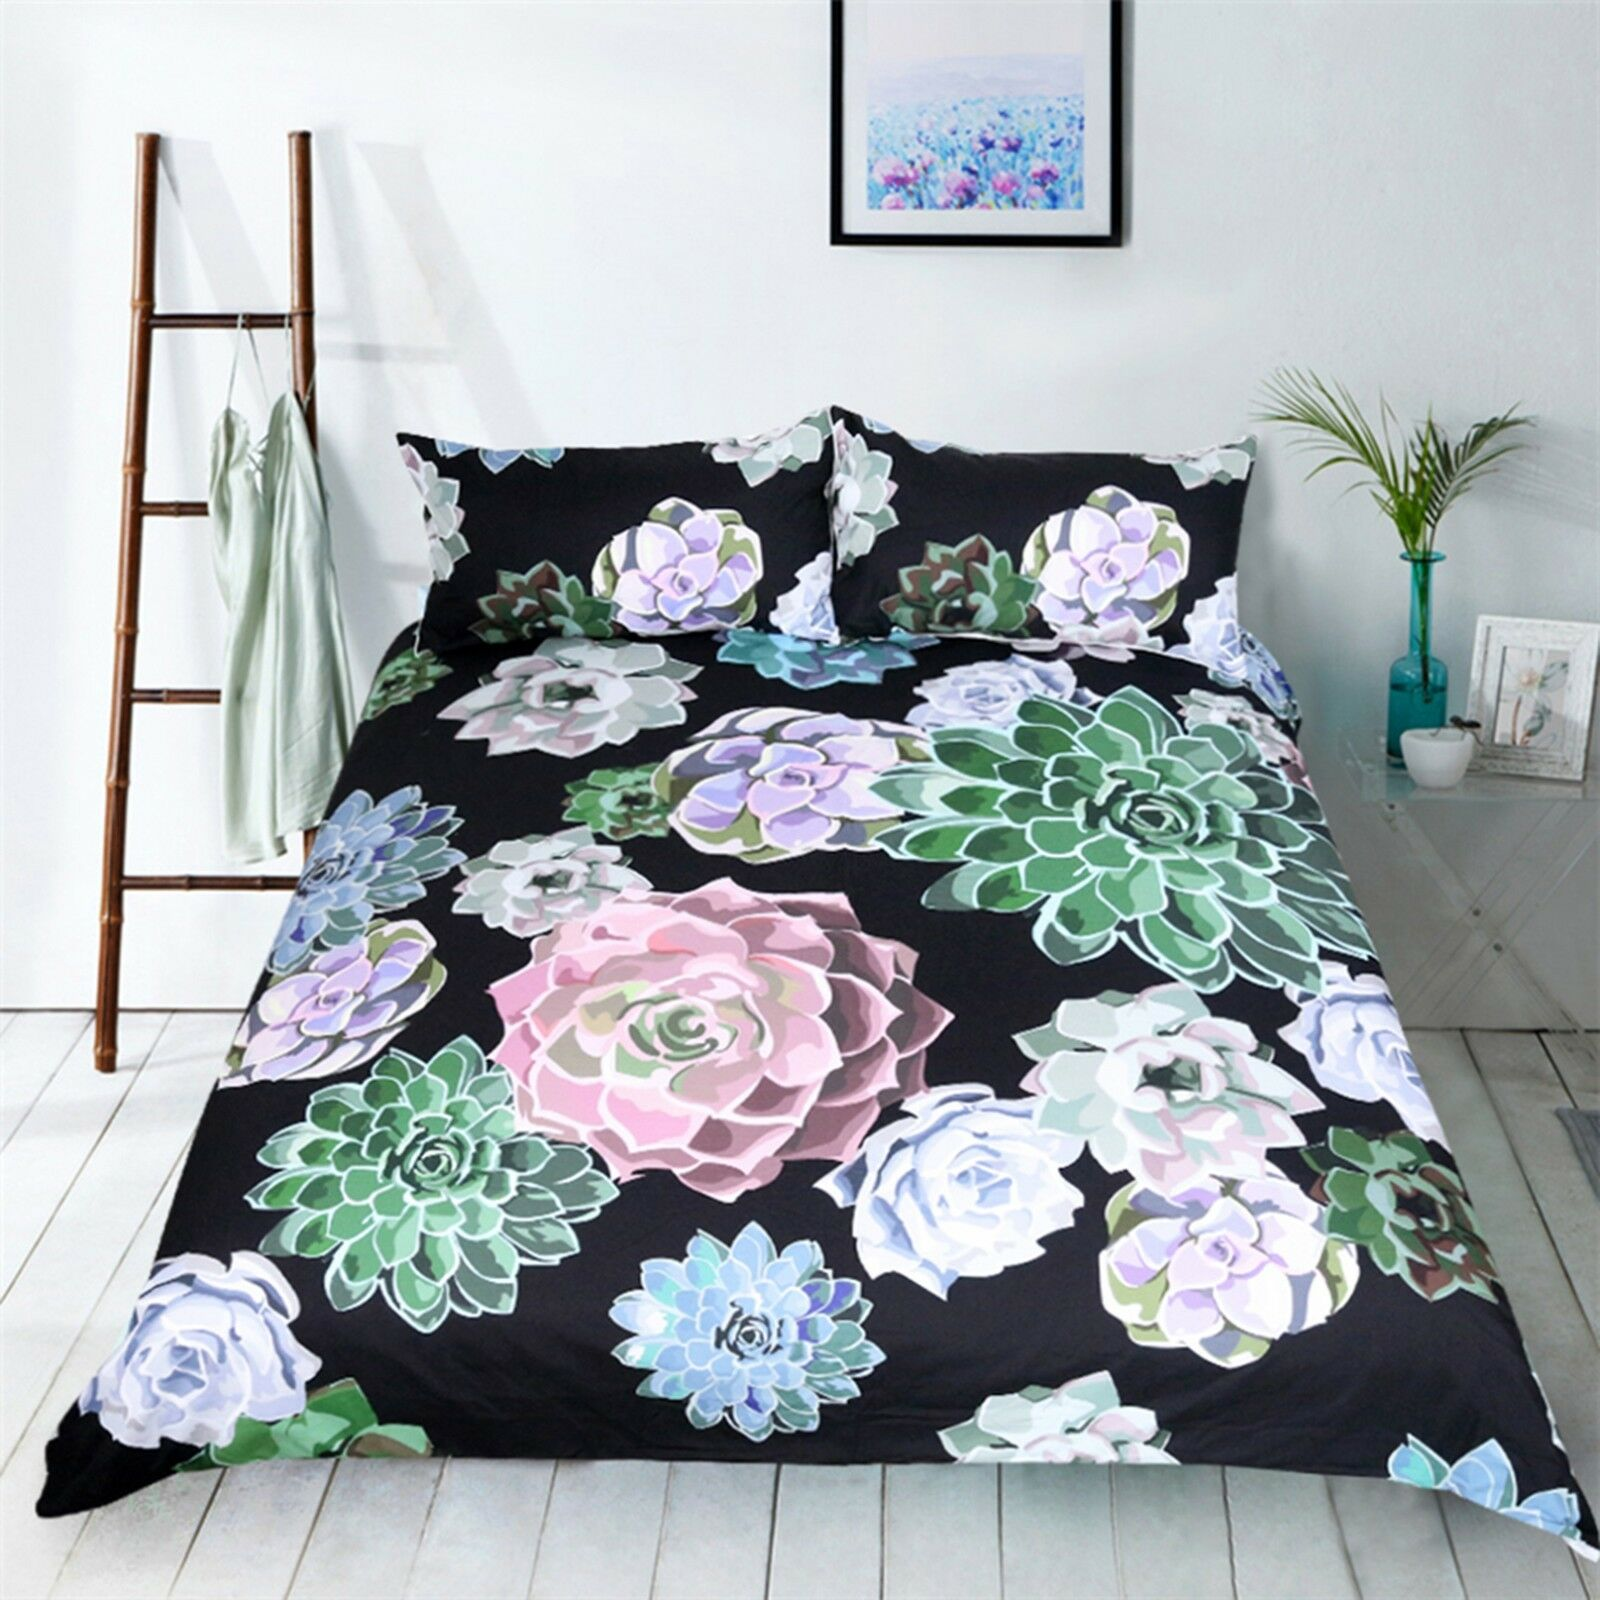 3D Succulent Plant 41 Bed Pillowcases Quilt Duvet Cover Set Single Queen King AU